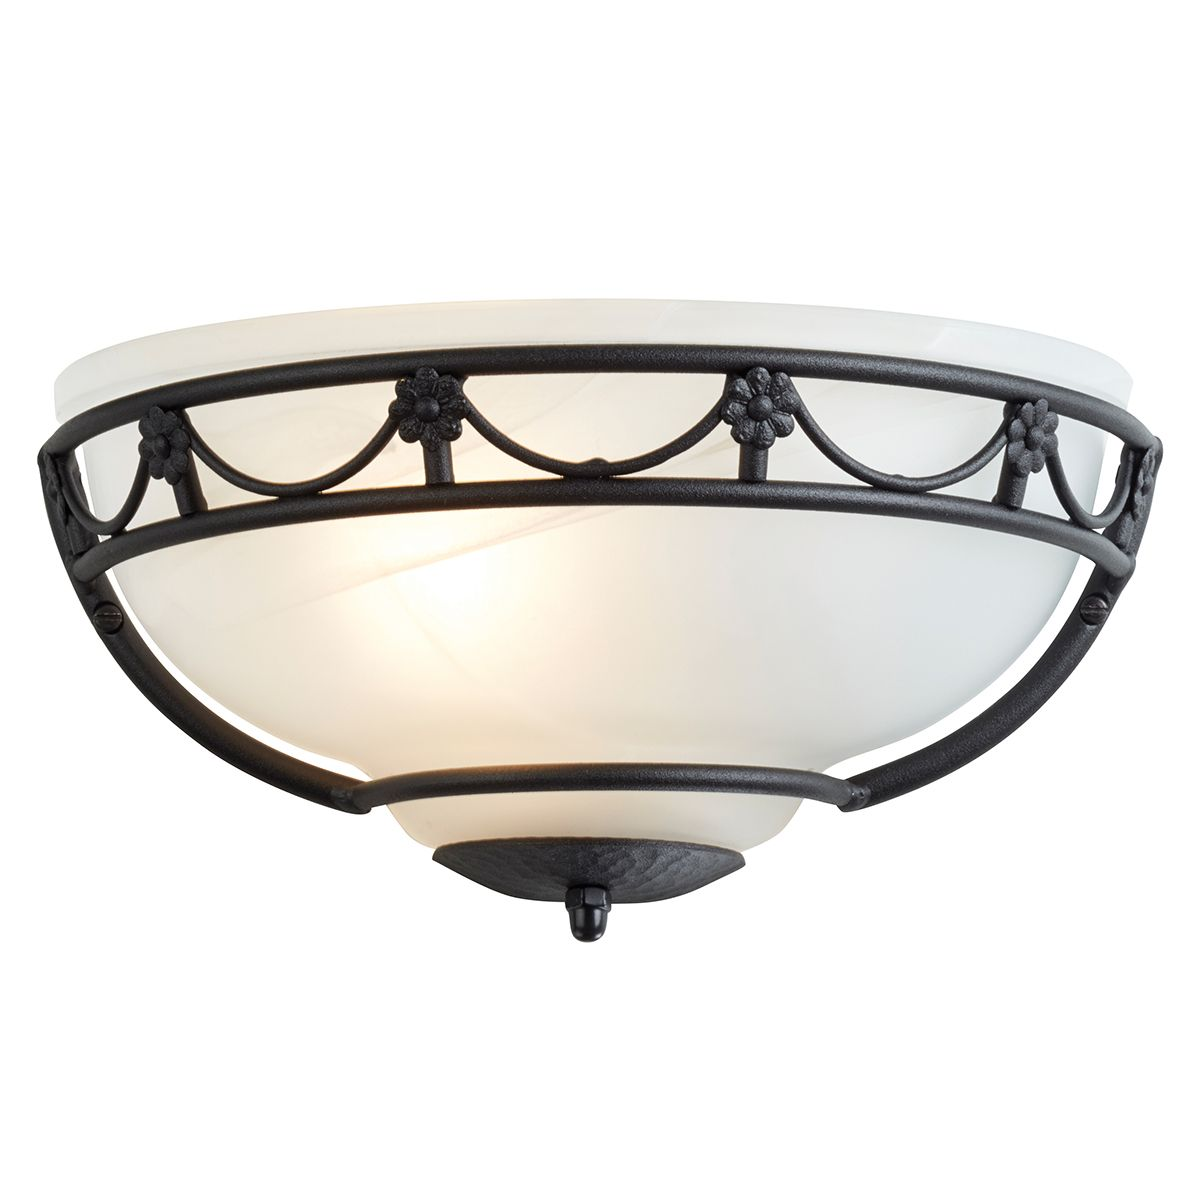 Carisbrooke Gothic Style Wall Light Uplighter in a Black Finish - ELSTEAD CB WU BK